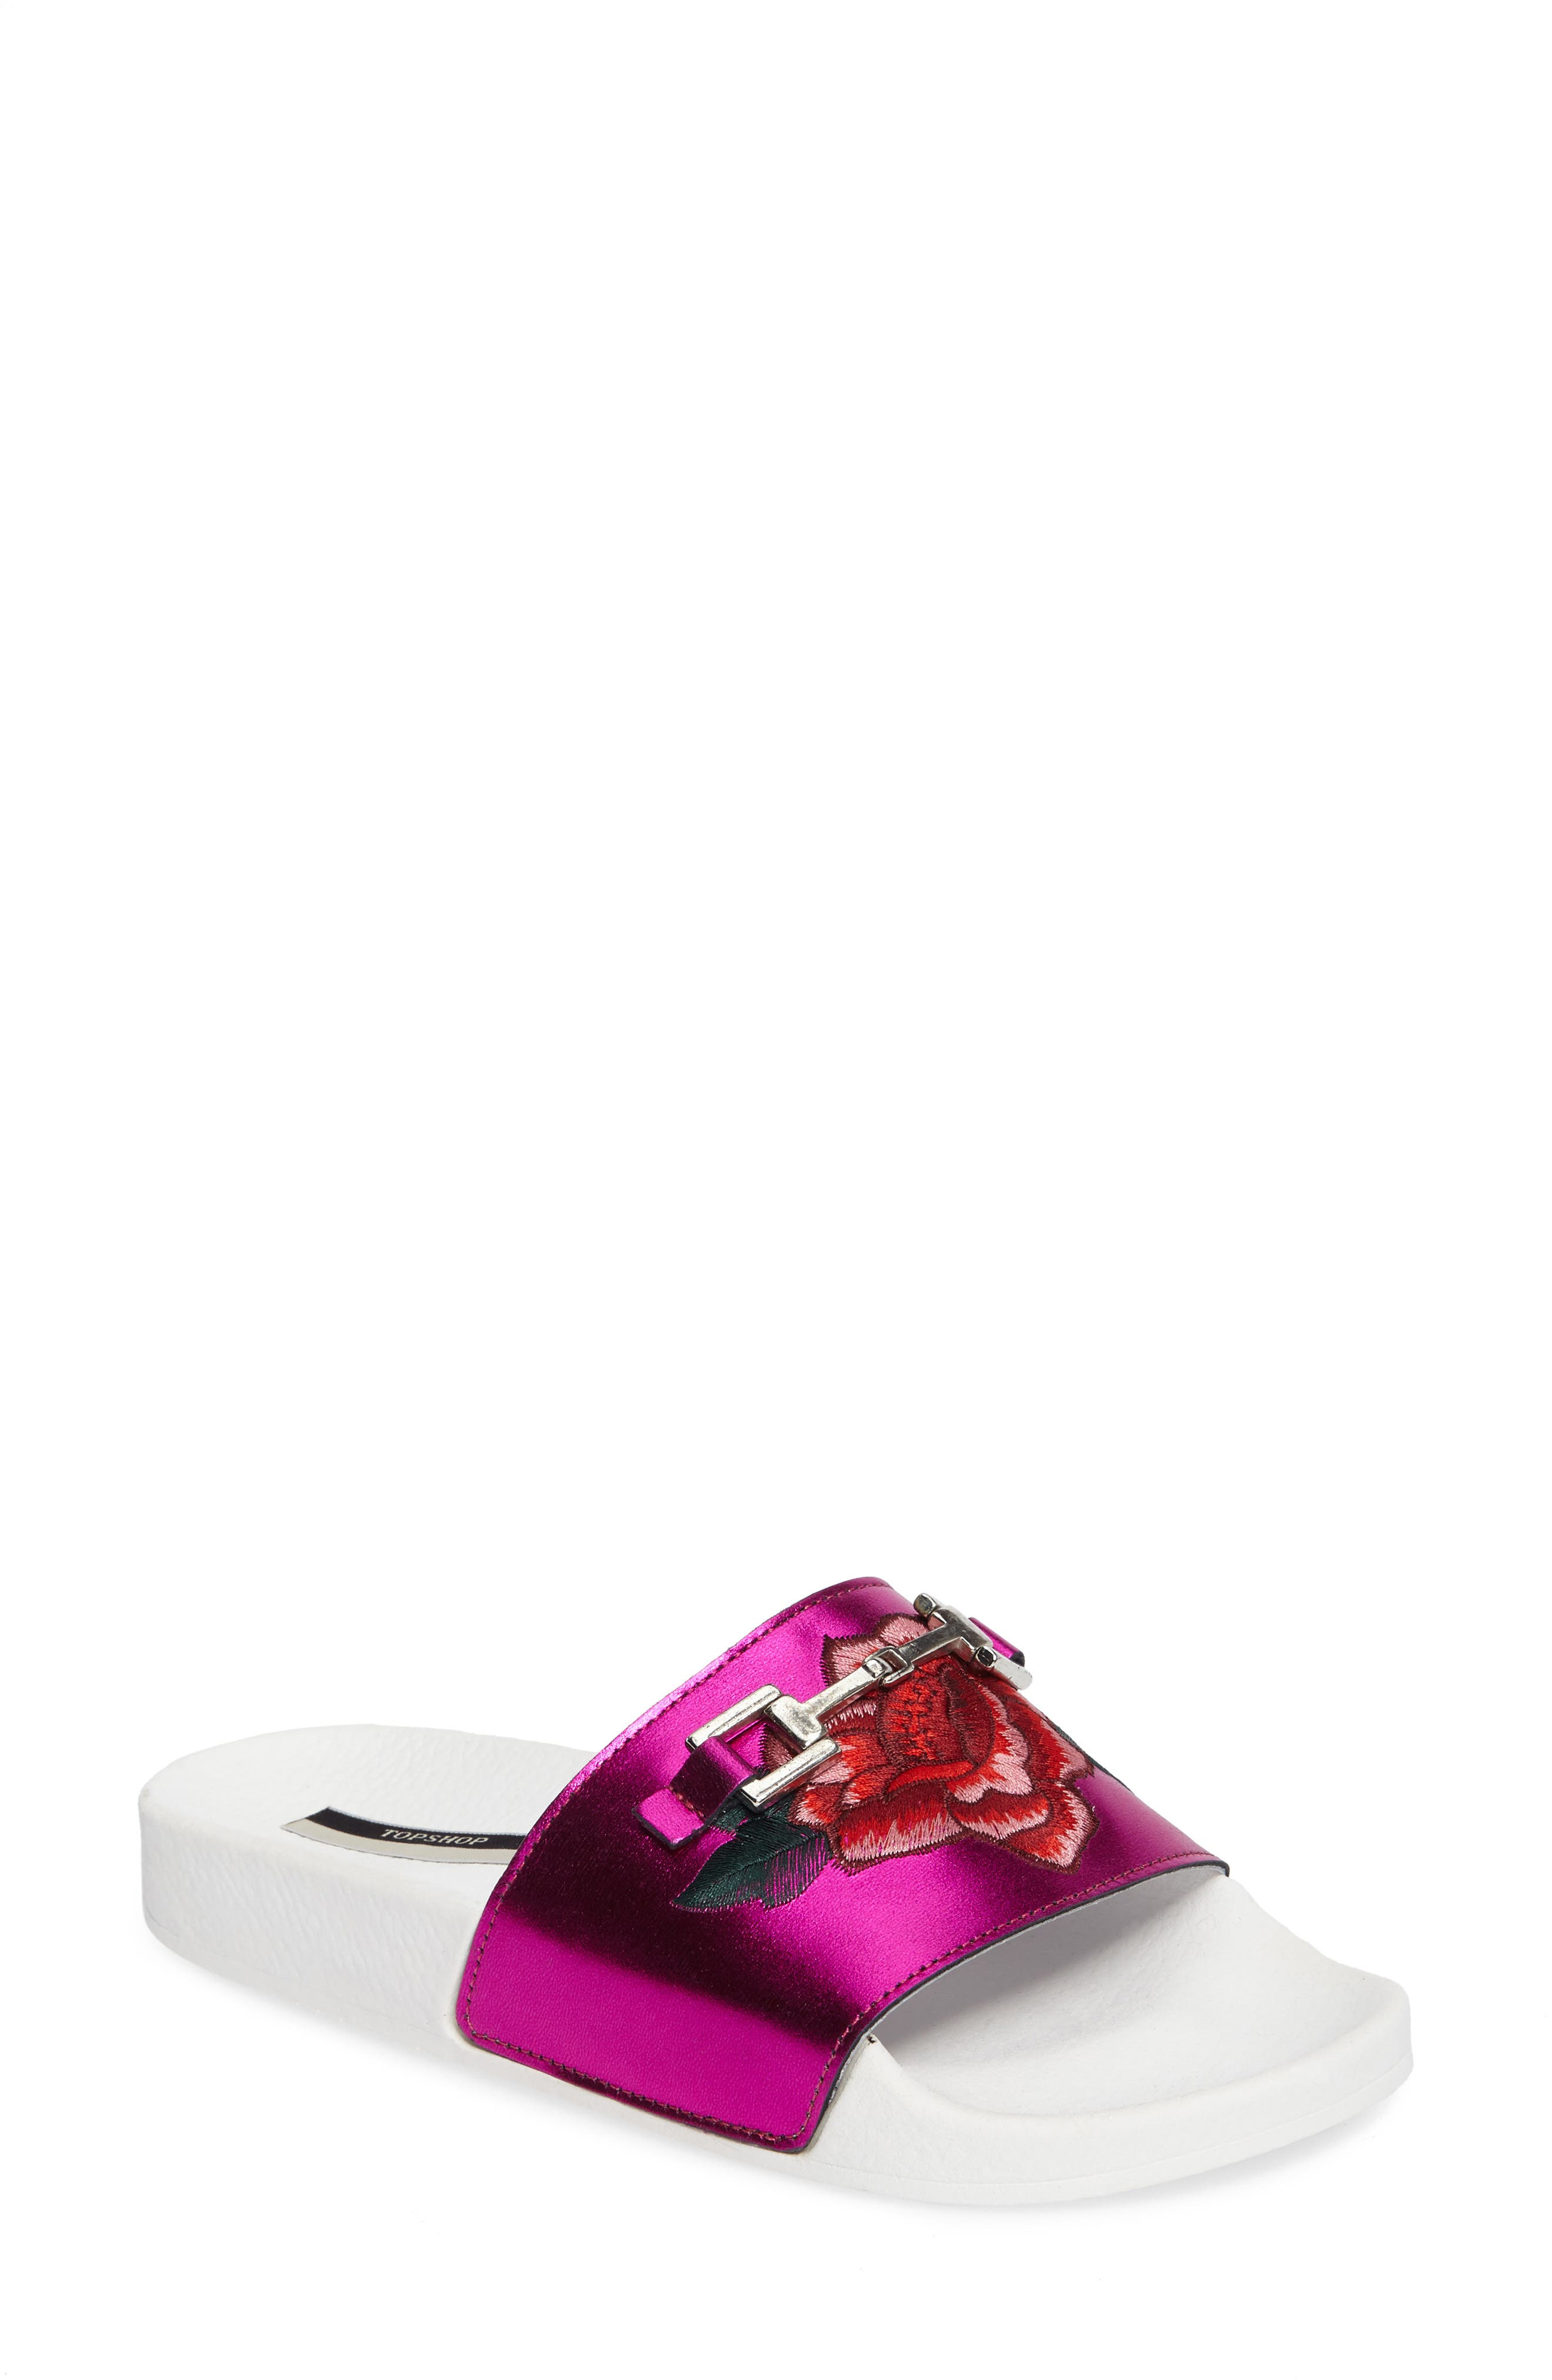 Main Image - Topshop Fierce Embroidered Slide Sandal (Women)